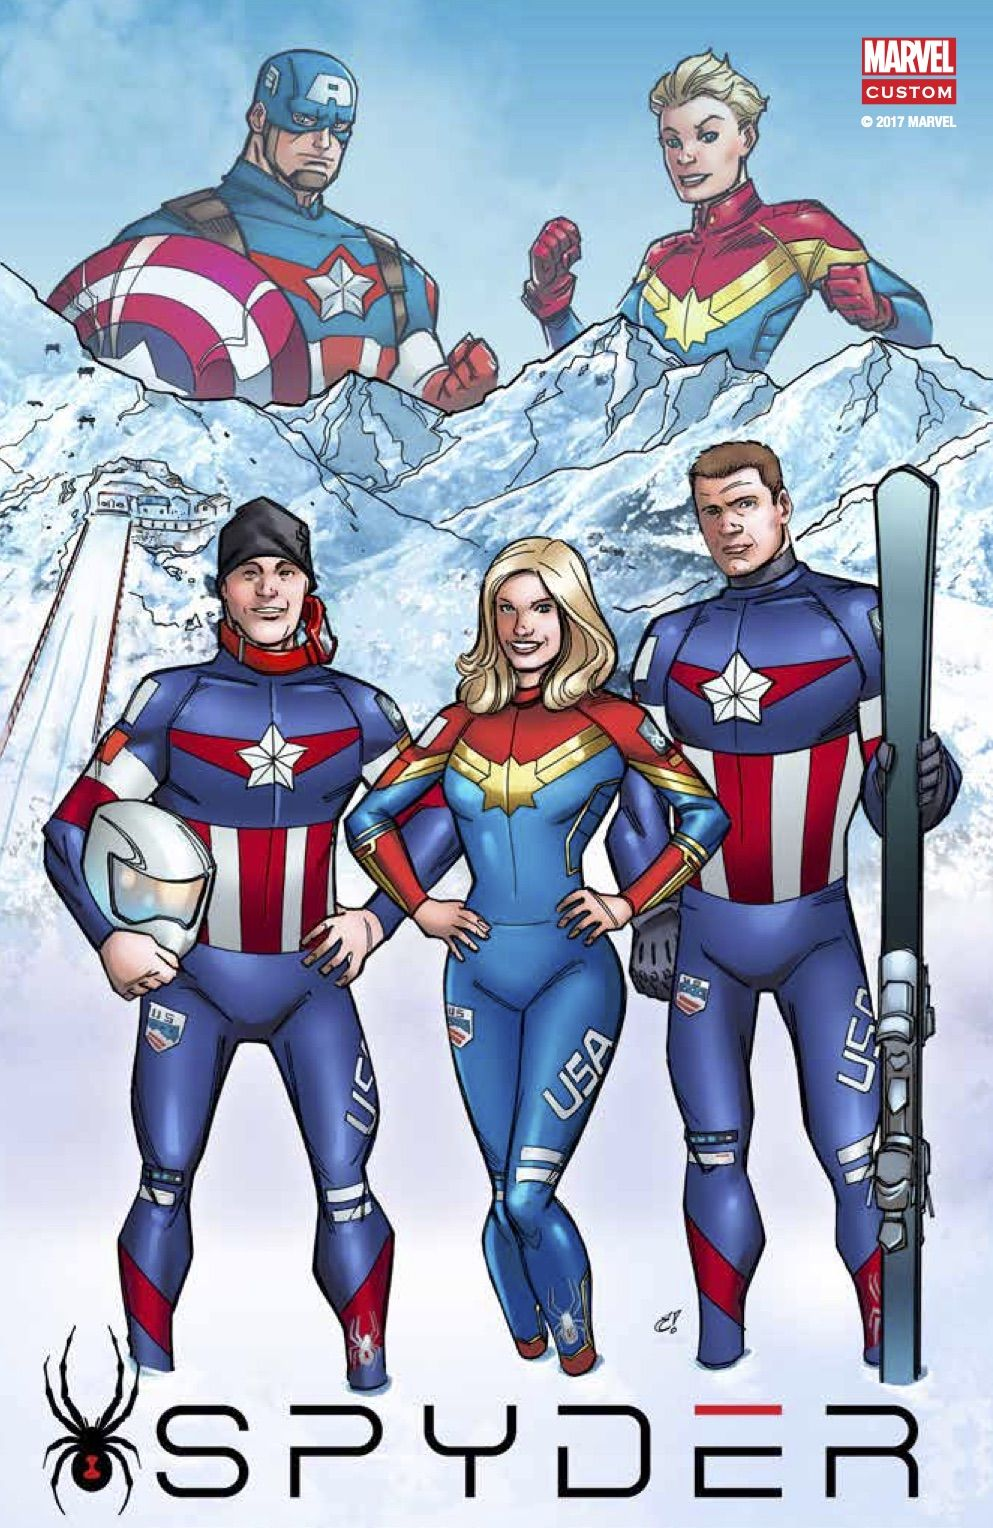 spyder marvel ski clothing collection | spyder ski wear | marvel